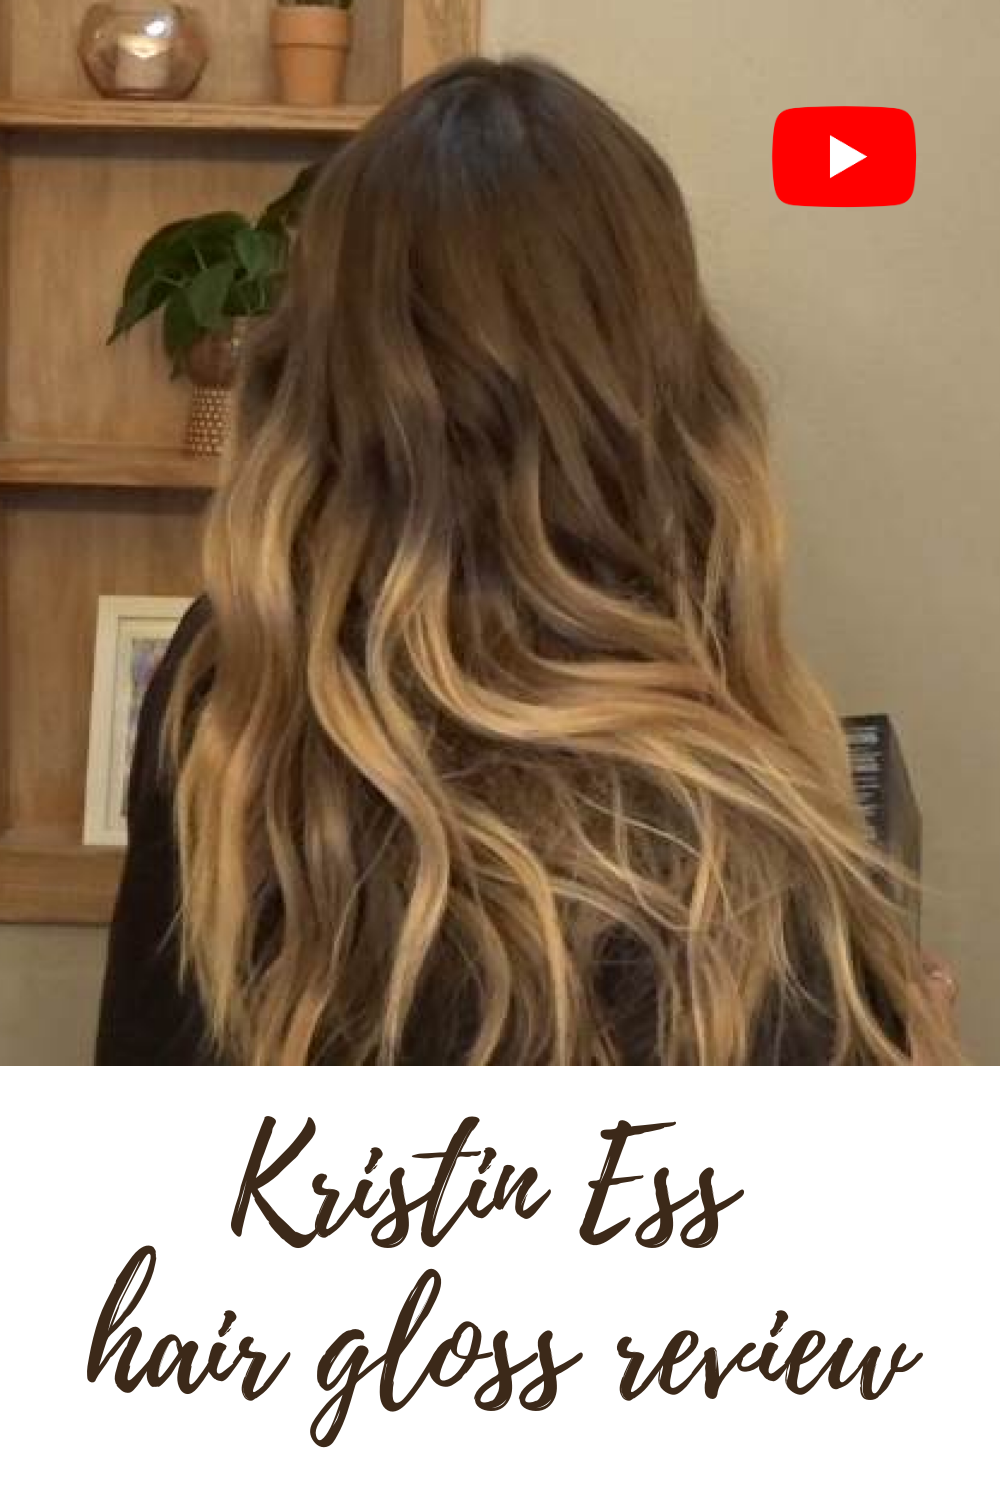 Kristin Ess Hair Gloss BEFORE AFTER in 2020 Hair gloss